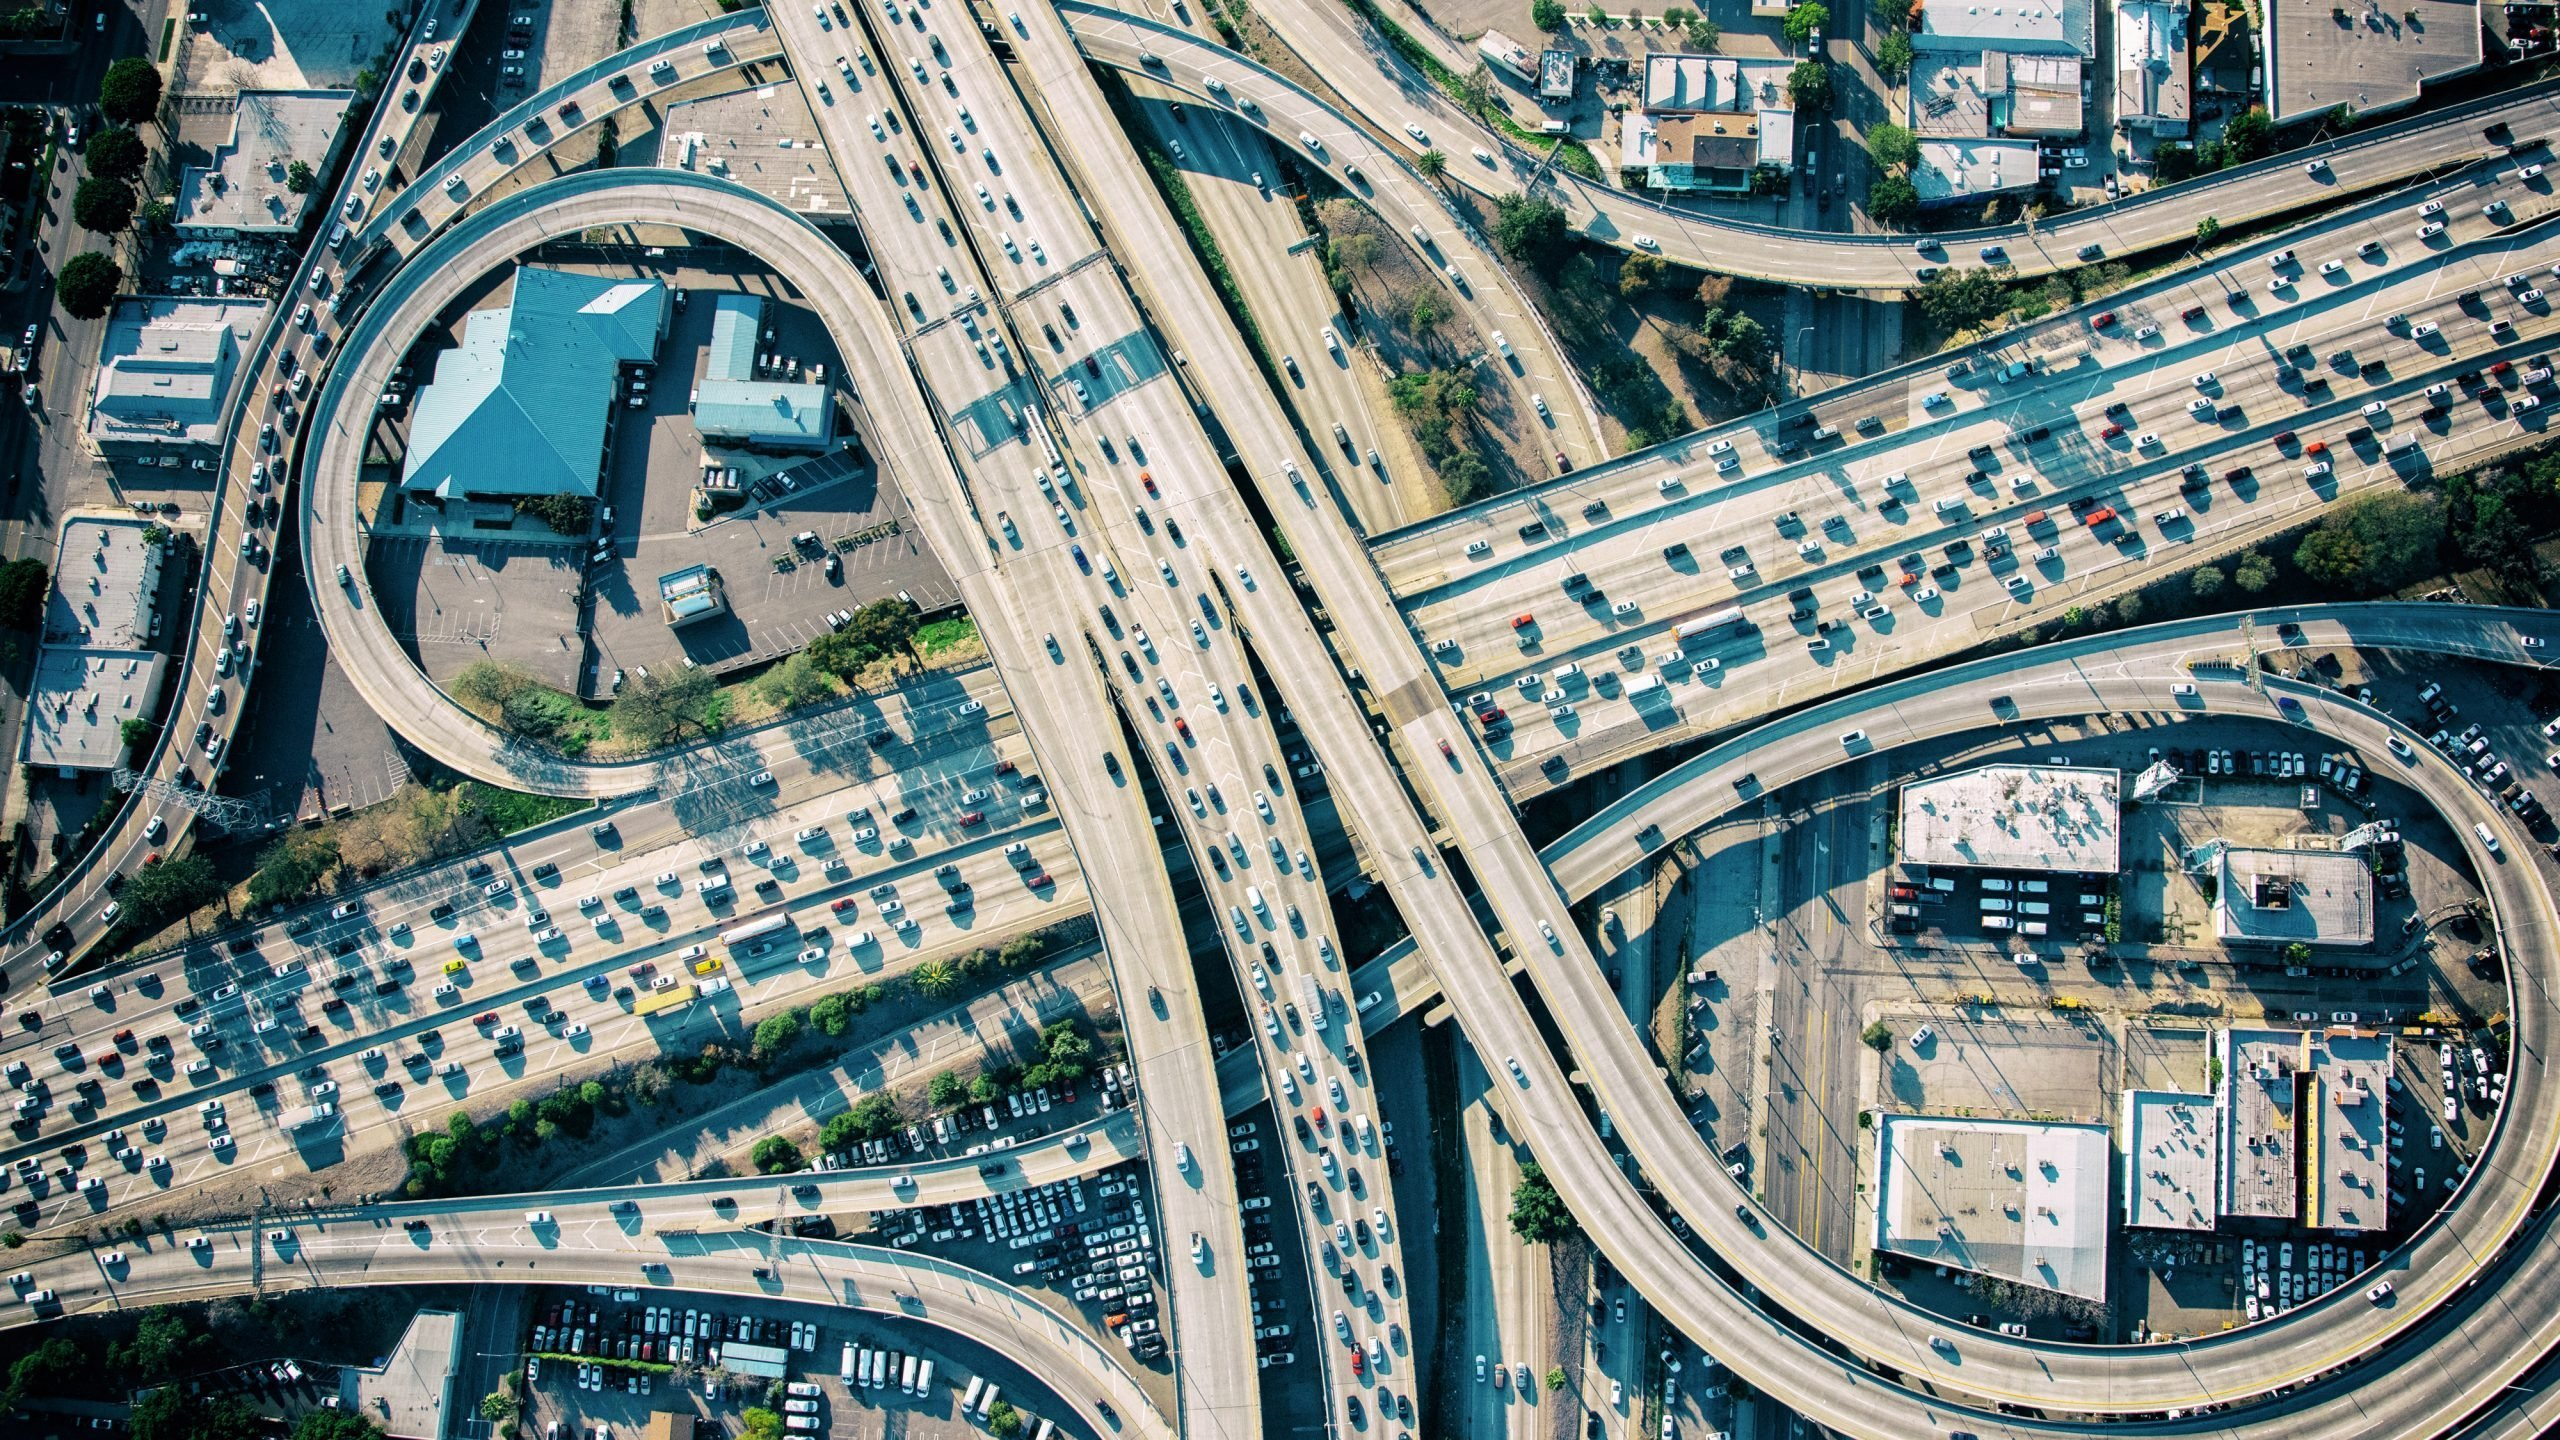 aerial view of a highway interchange